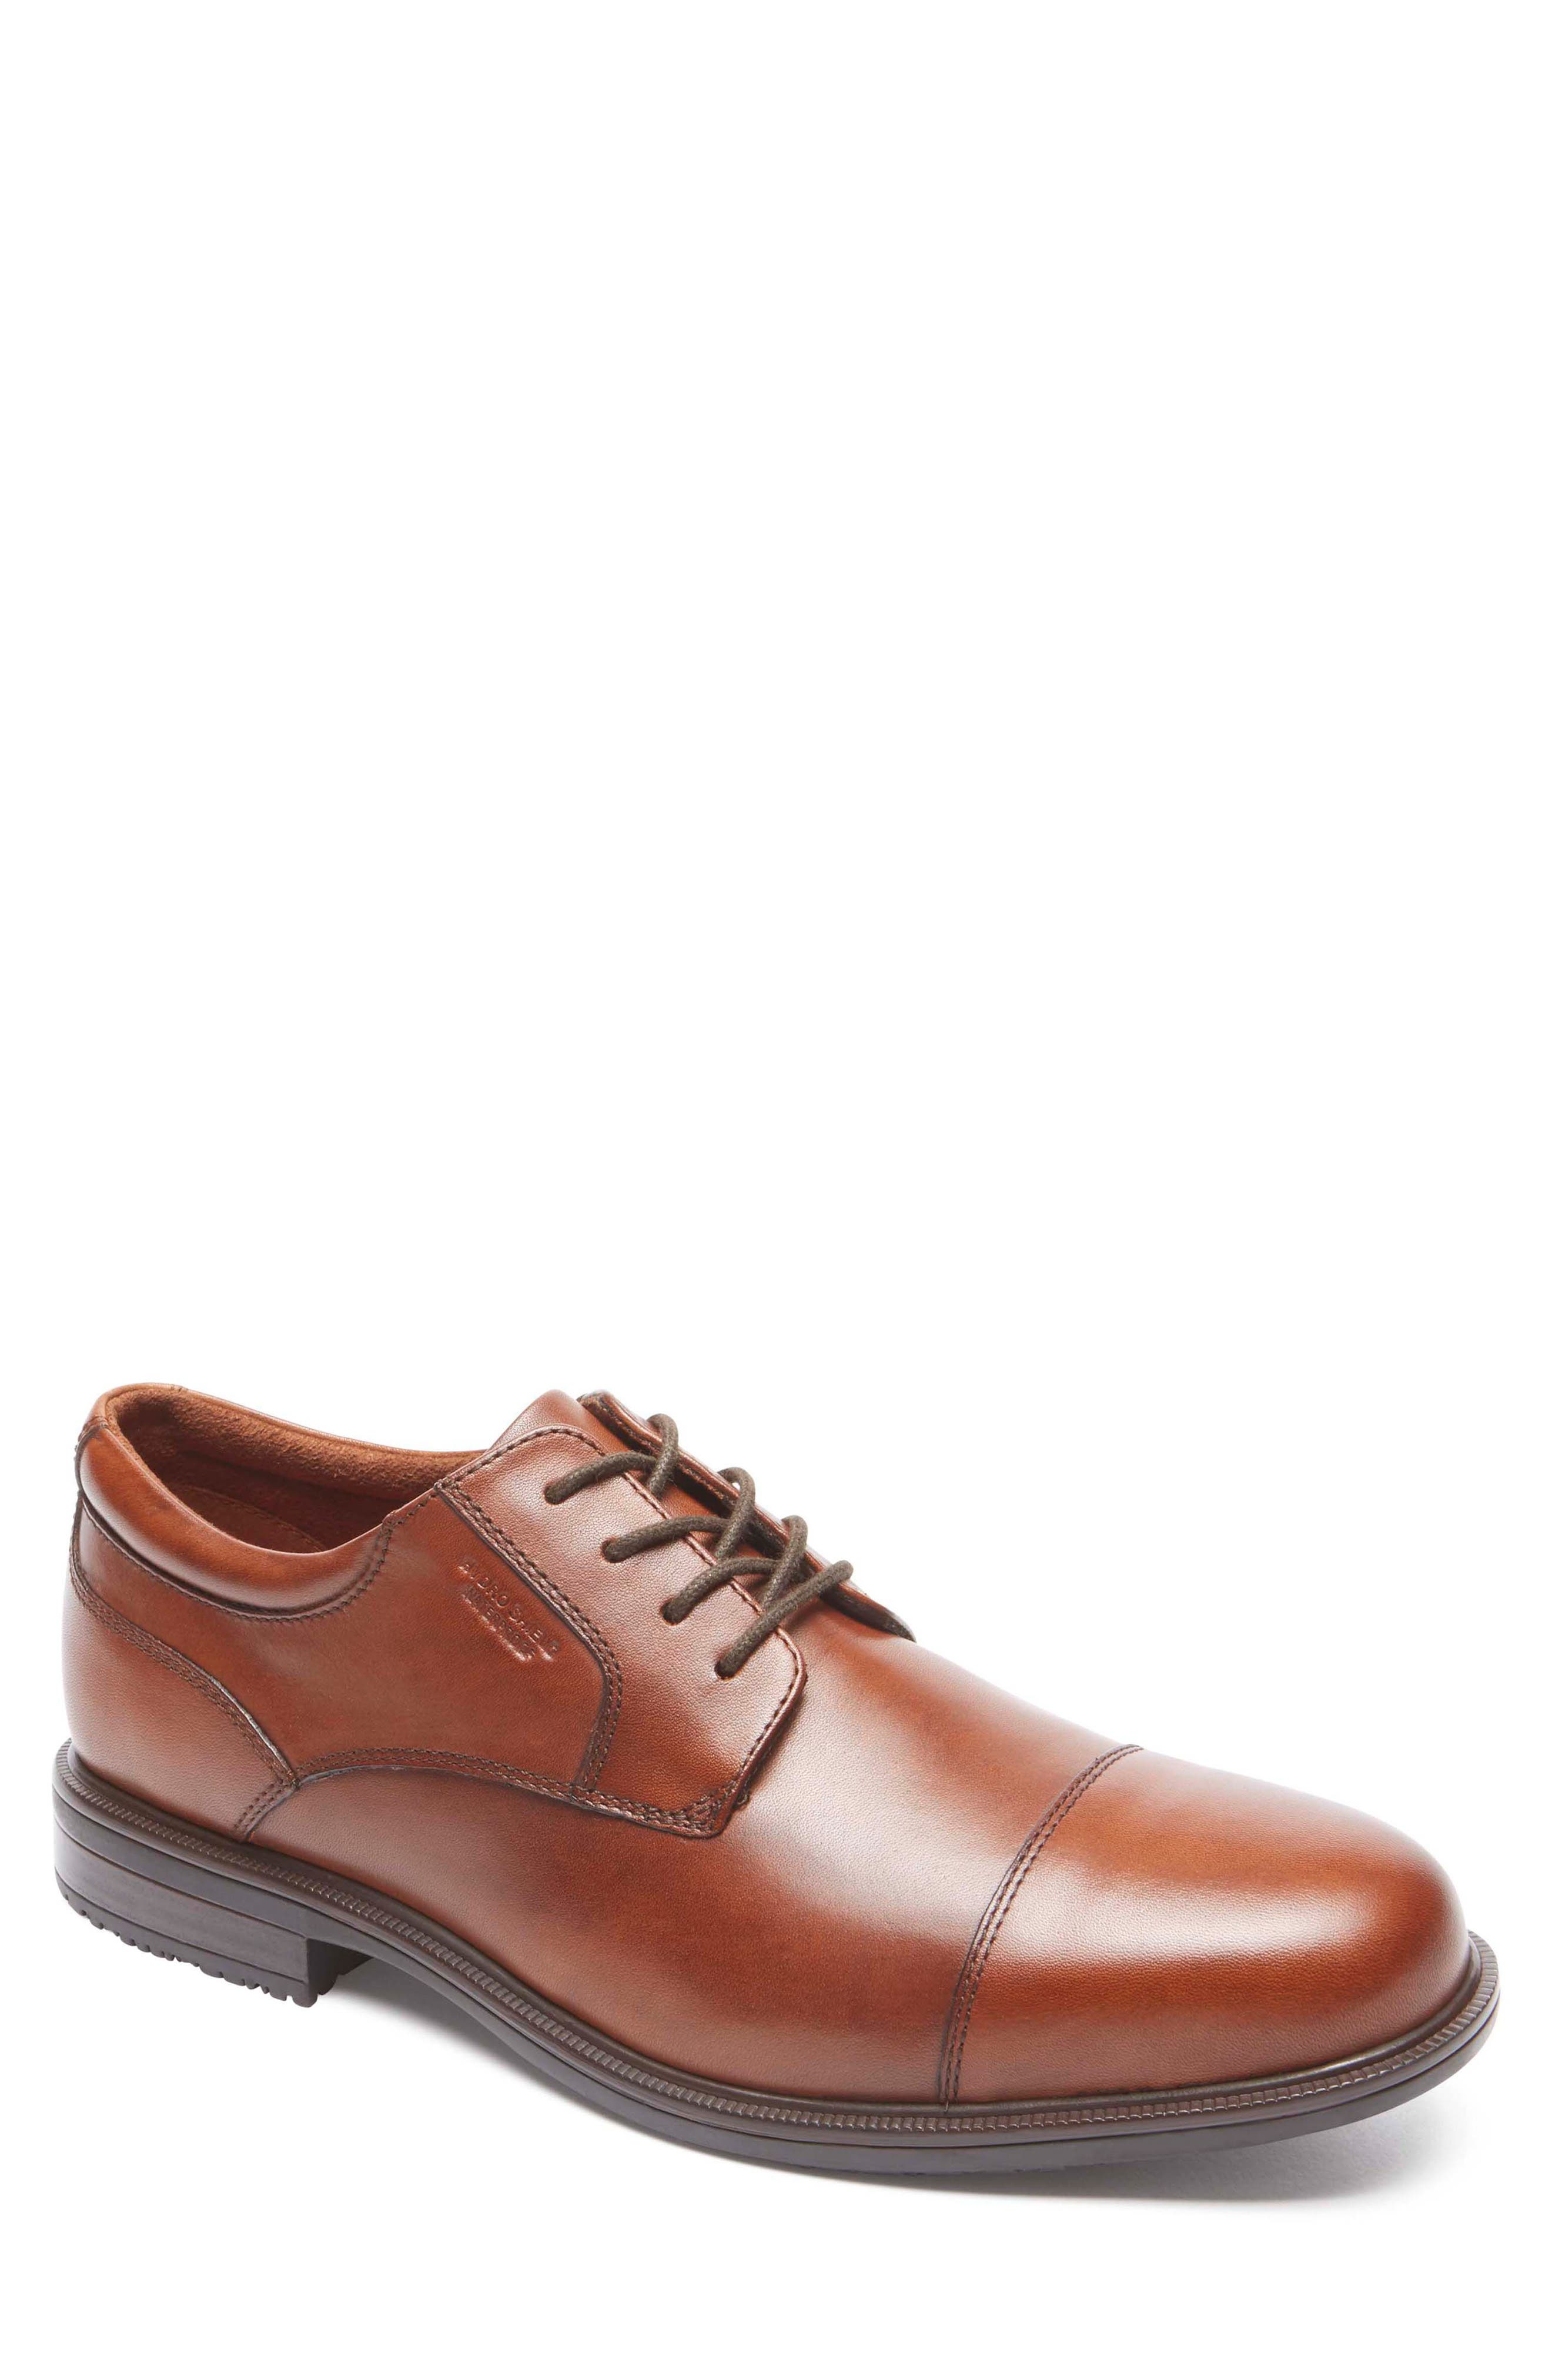 Image of Rockport Essential Details II Waterproof Cap Toe Derby